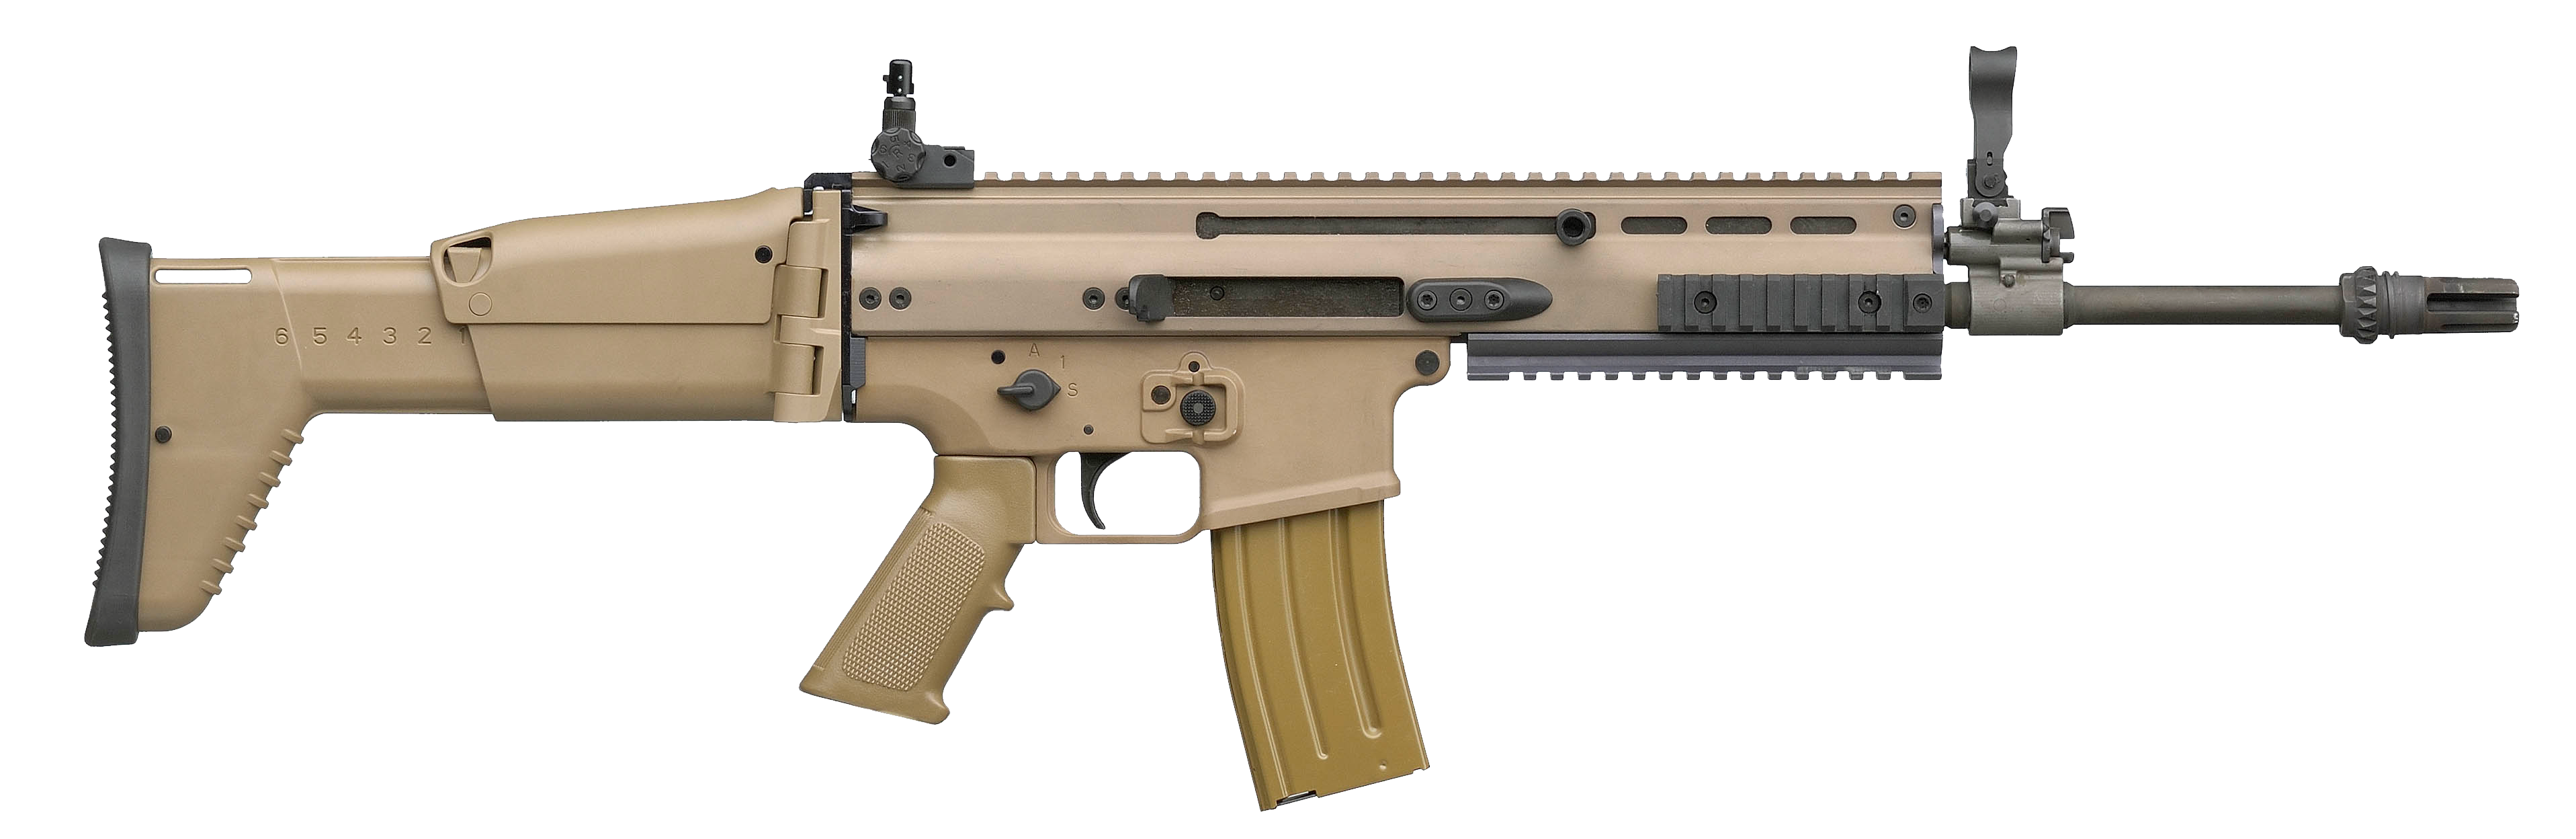 svg free download guns transparent scar #97364727